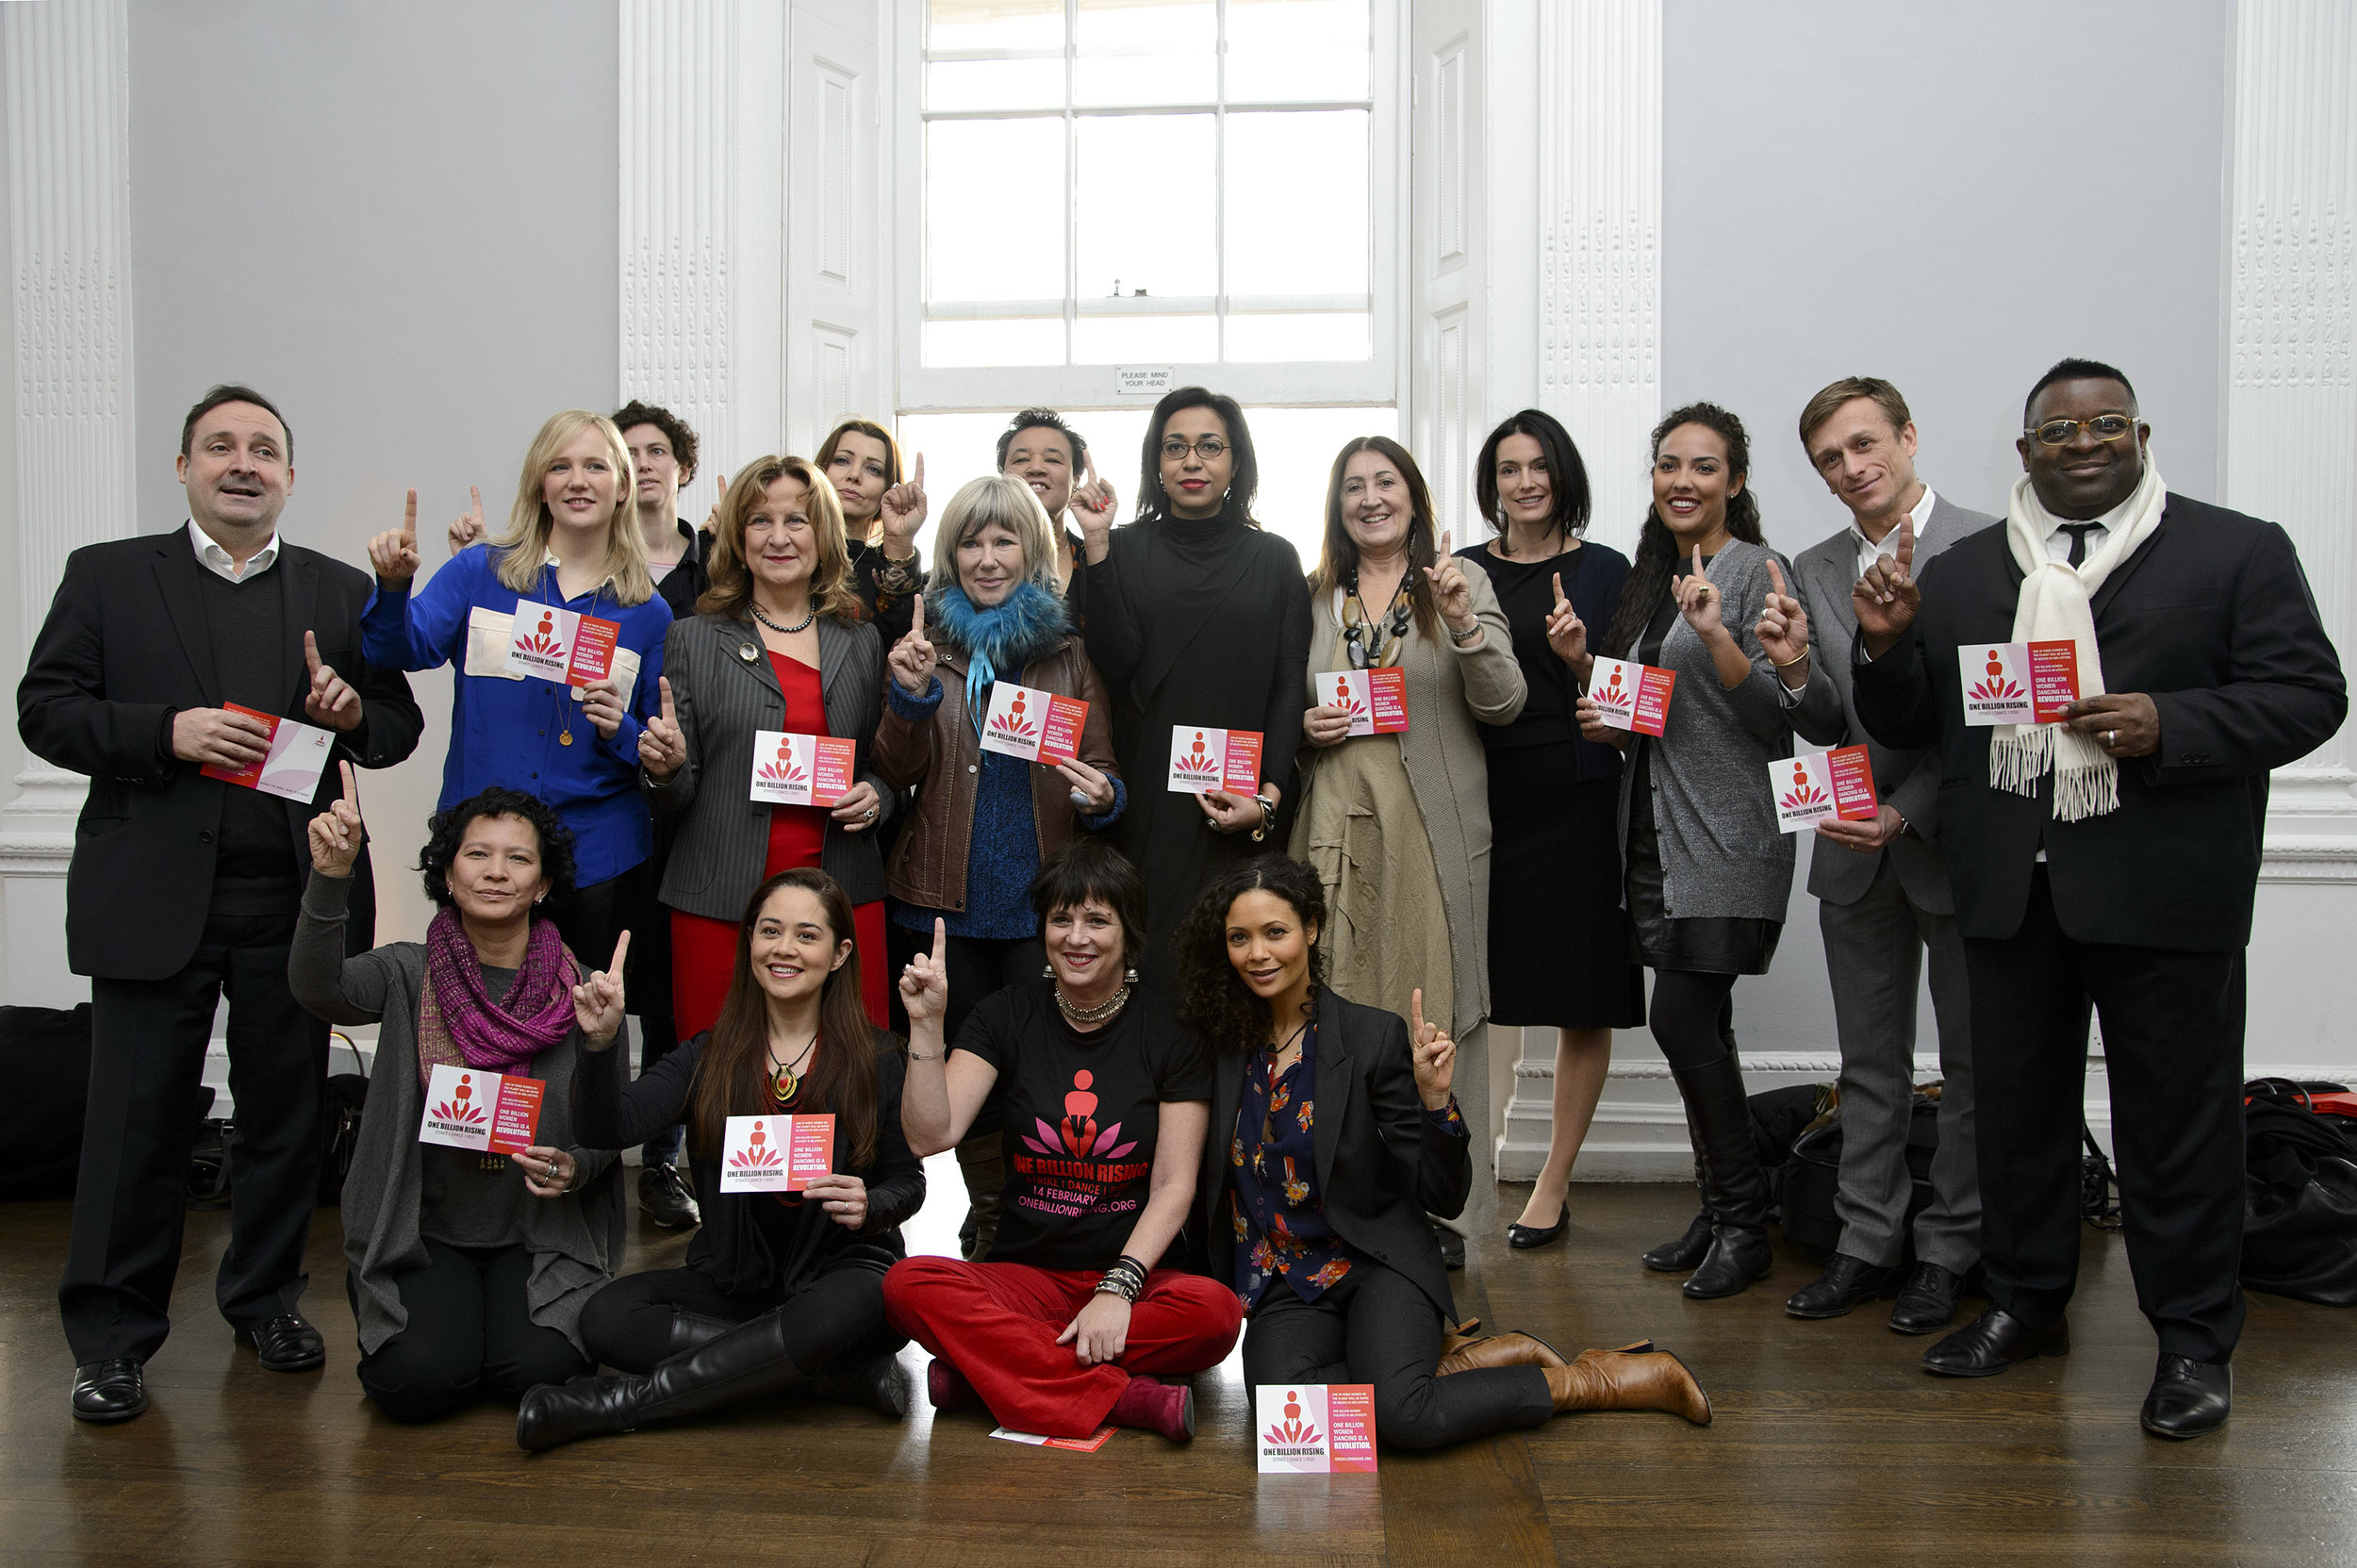 Lynne at the 1 Billion Rising Press Launch with Eve Ensler, Thandie Newton, Monique Wilson, Stella Creasy MP, Baroness Helena Kennedy, Jude Kelly and supporters